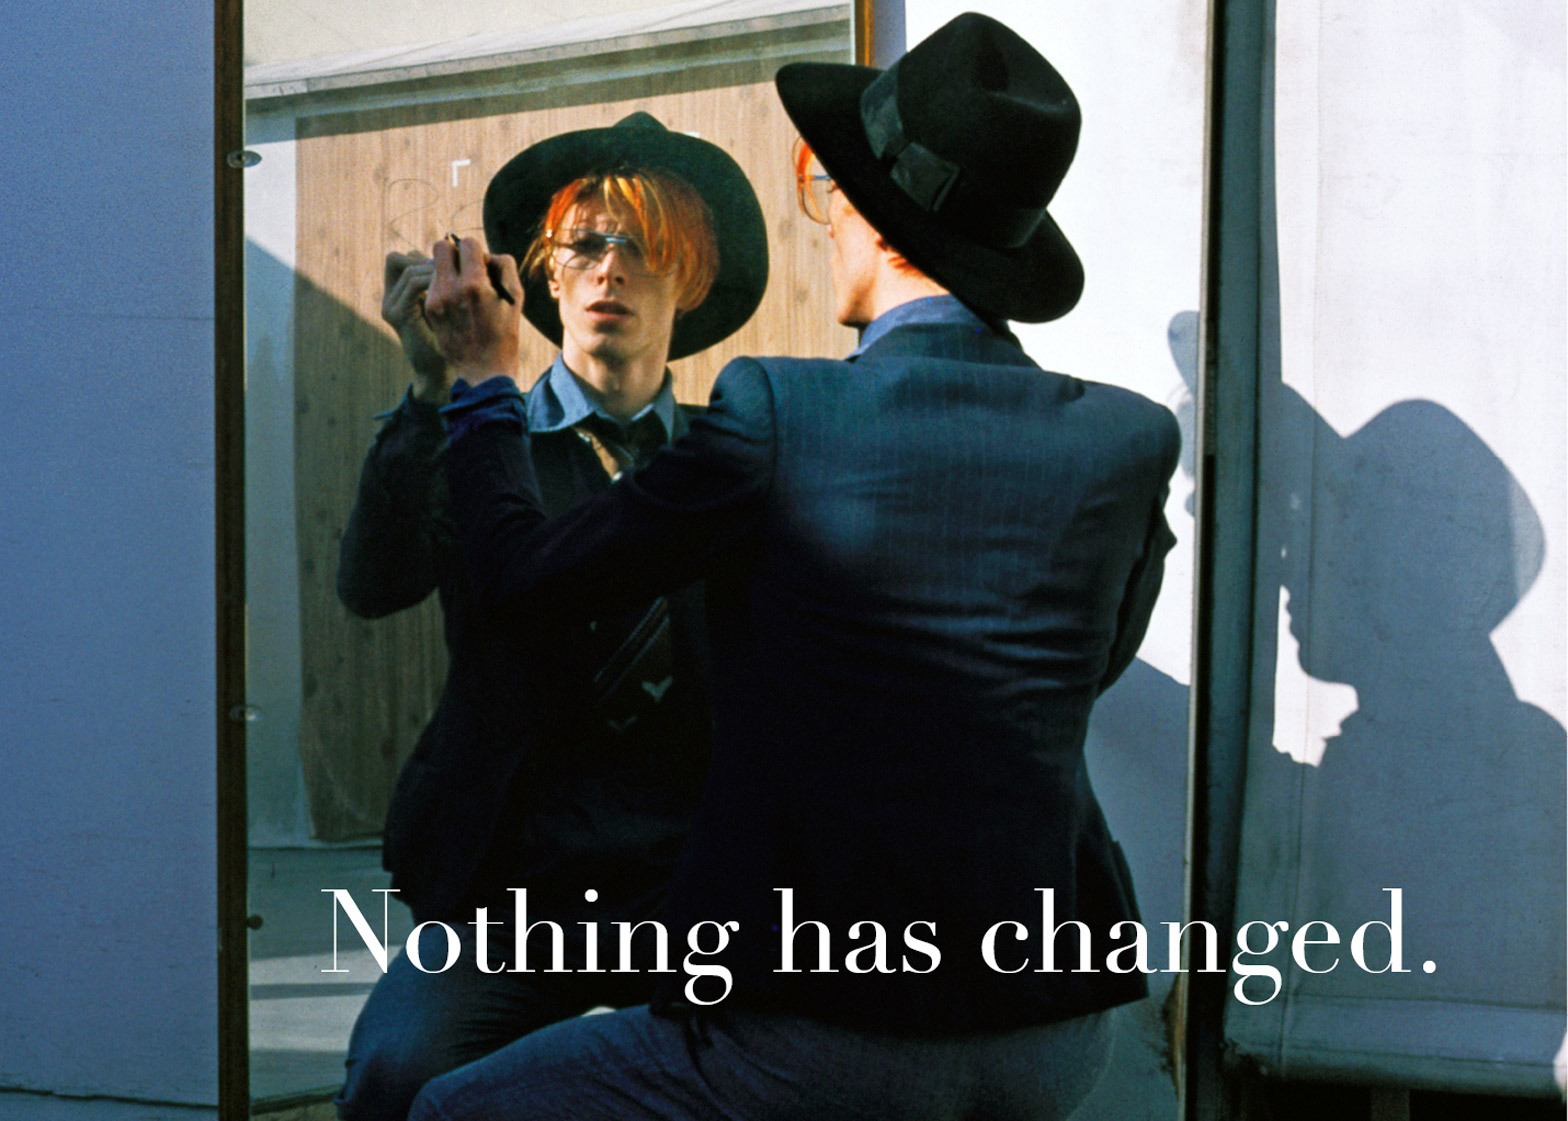 Album artwork for Nothing Has Changed, 2014